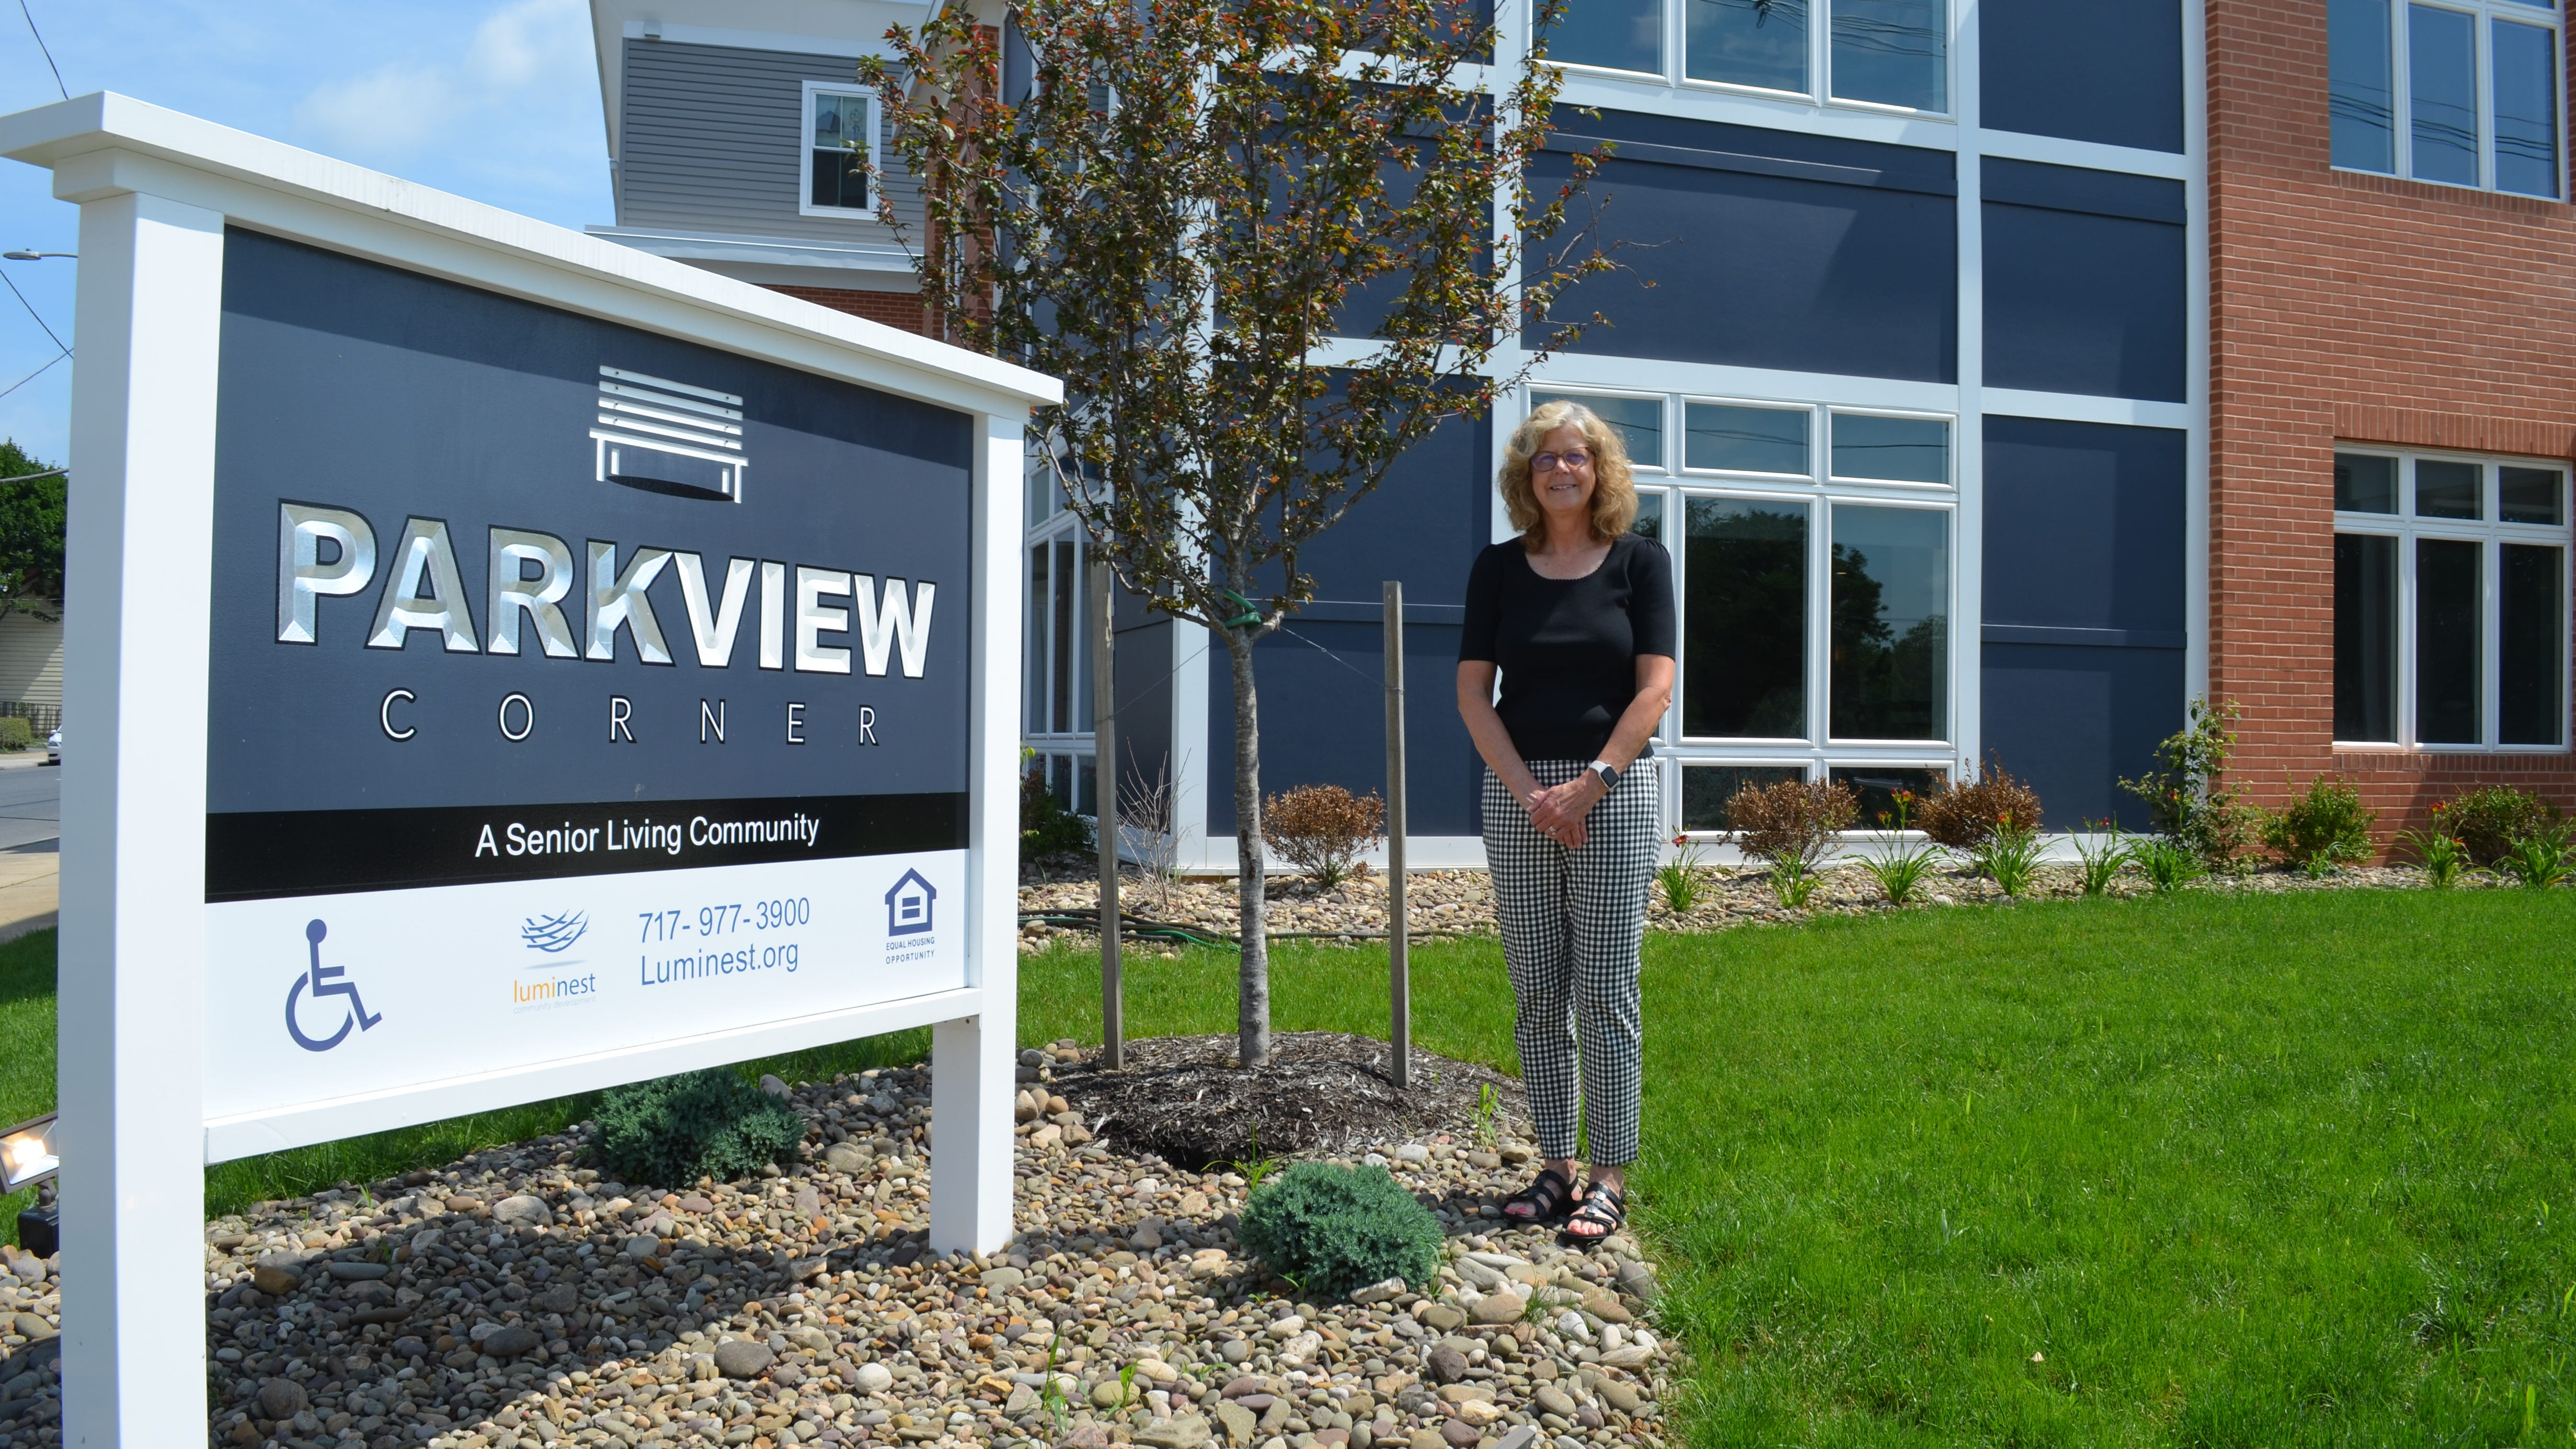 Bonnie Zehler, executive director of Luminest, said they've nearly filled their 40 units at the new Parkview Corner senior living community.